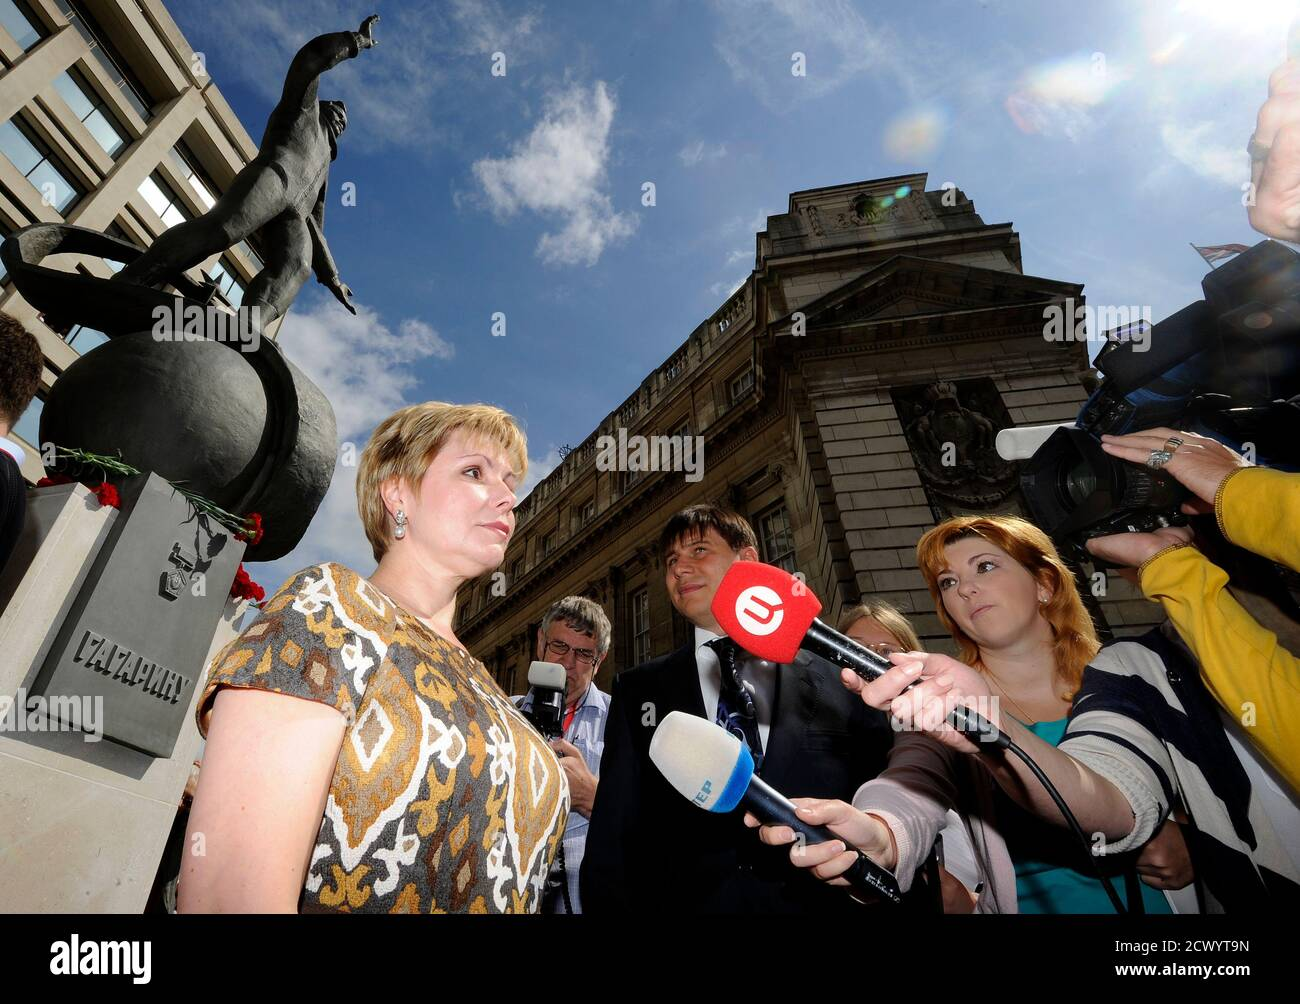 Elena Gagarina, the daughter of Yuri Gagarin, the first man in space, talks to the media after unveiling a statue of him outside the British Council headquarters in central London July 14, 2011   REUTERS/Paul Hackett  (BRITAIN - Tags: SOCIETY POLITICS) Banque D'Images